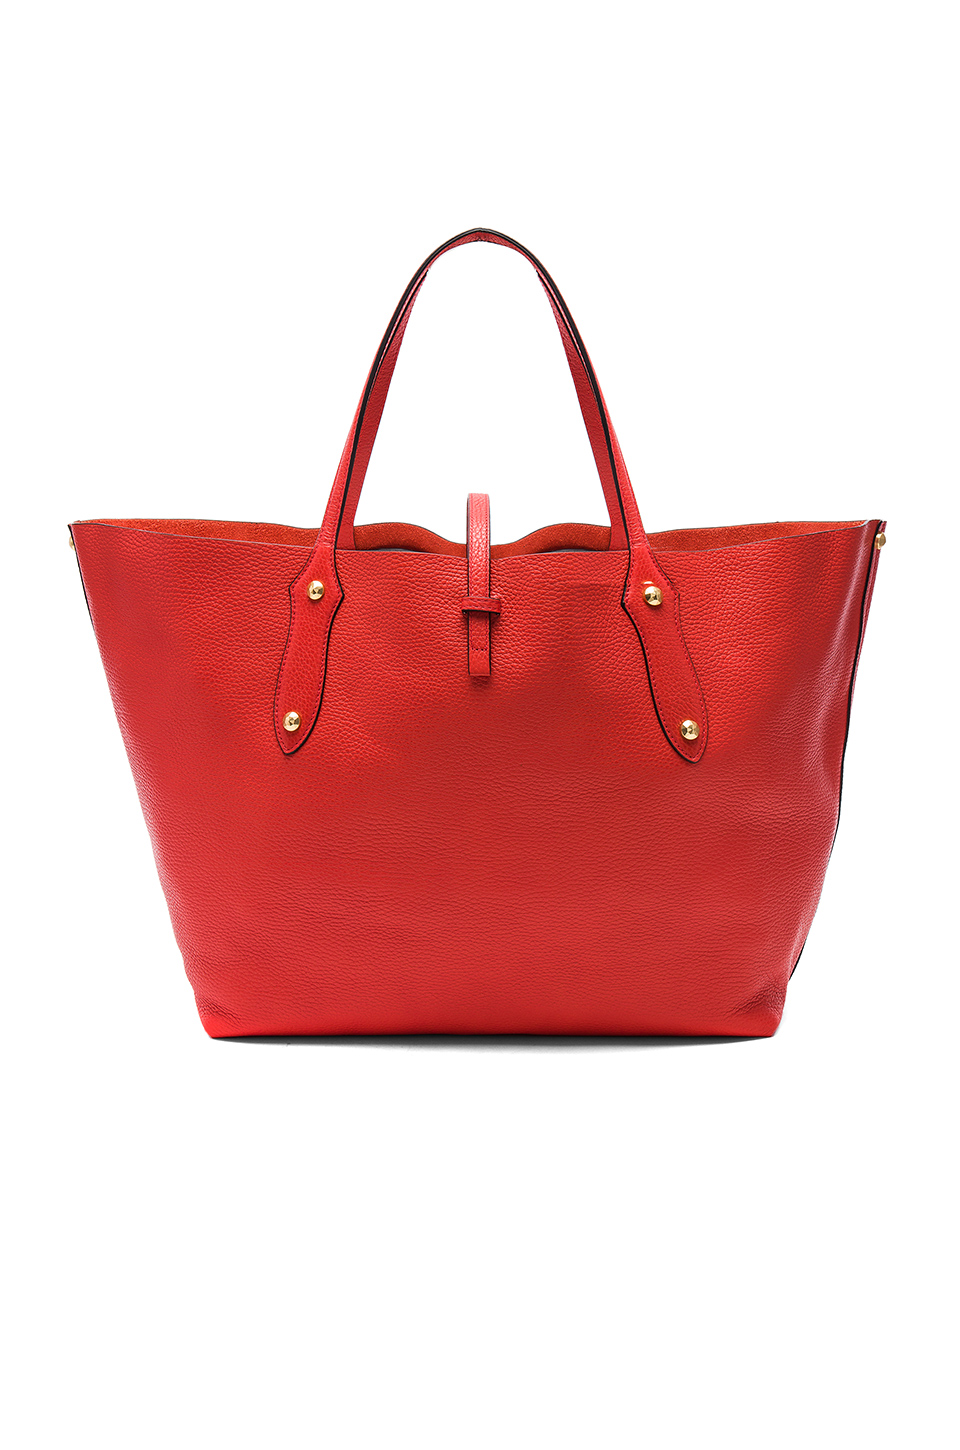 Annabel Ingall Isabella Large Tote in Tea Rose